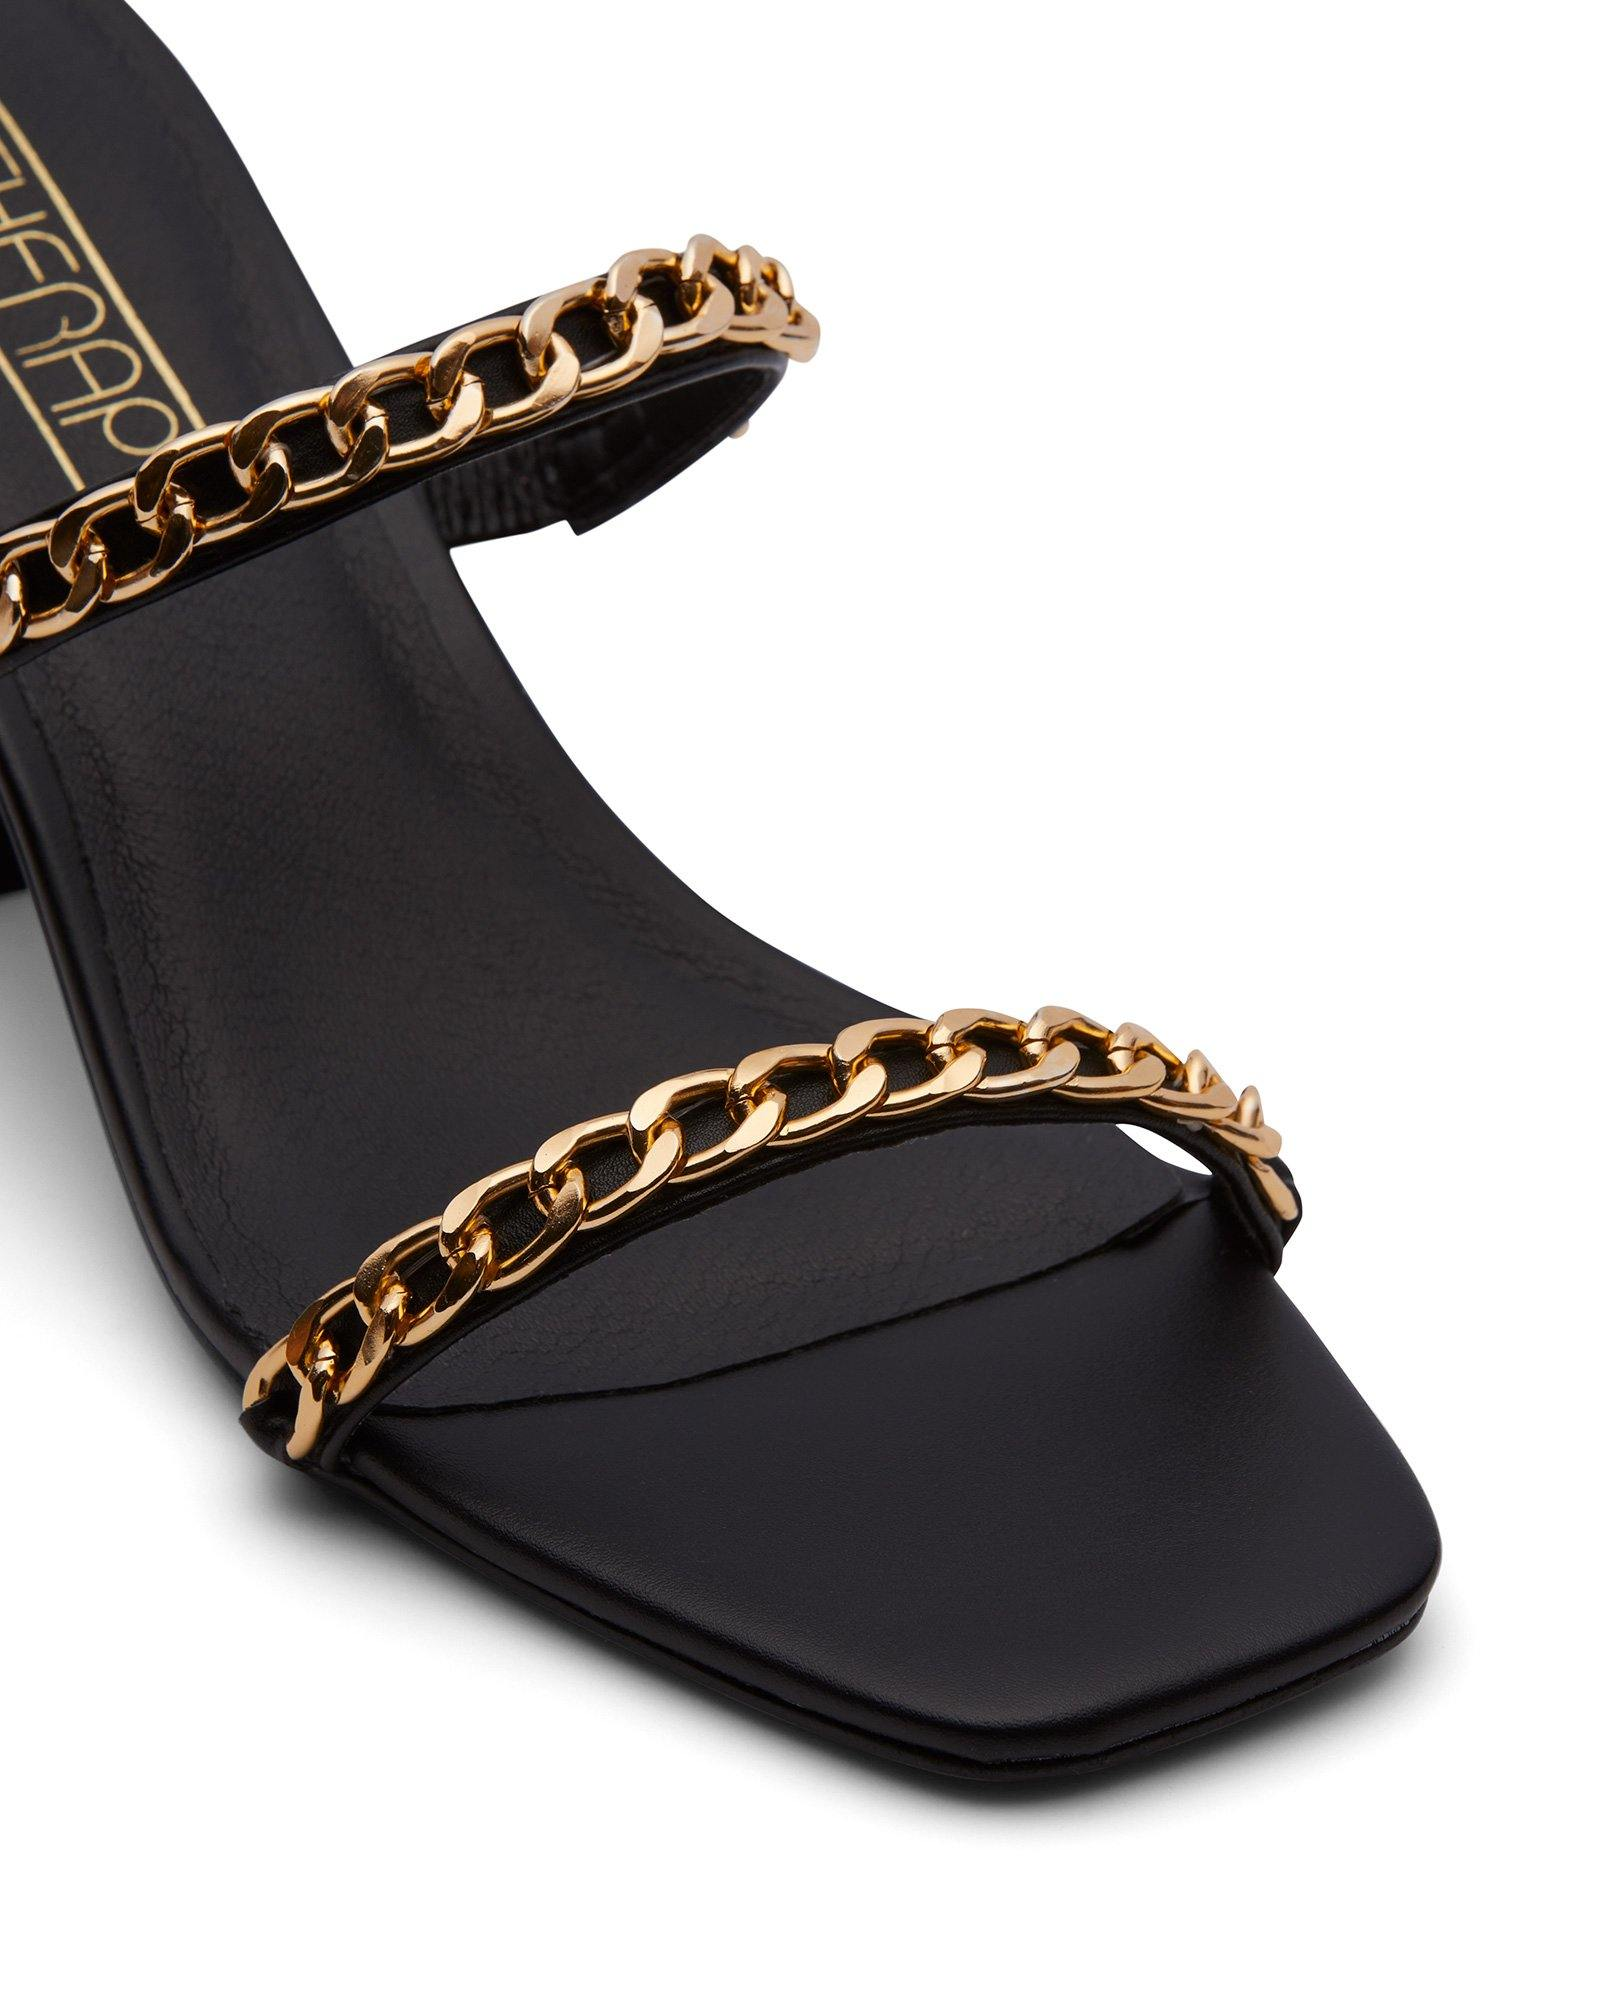 Goldie Chained Black